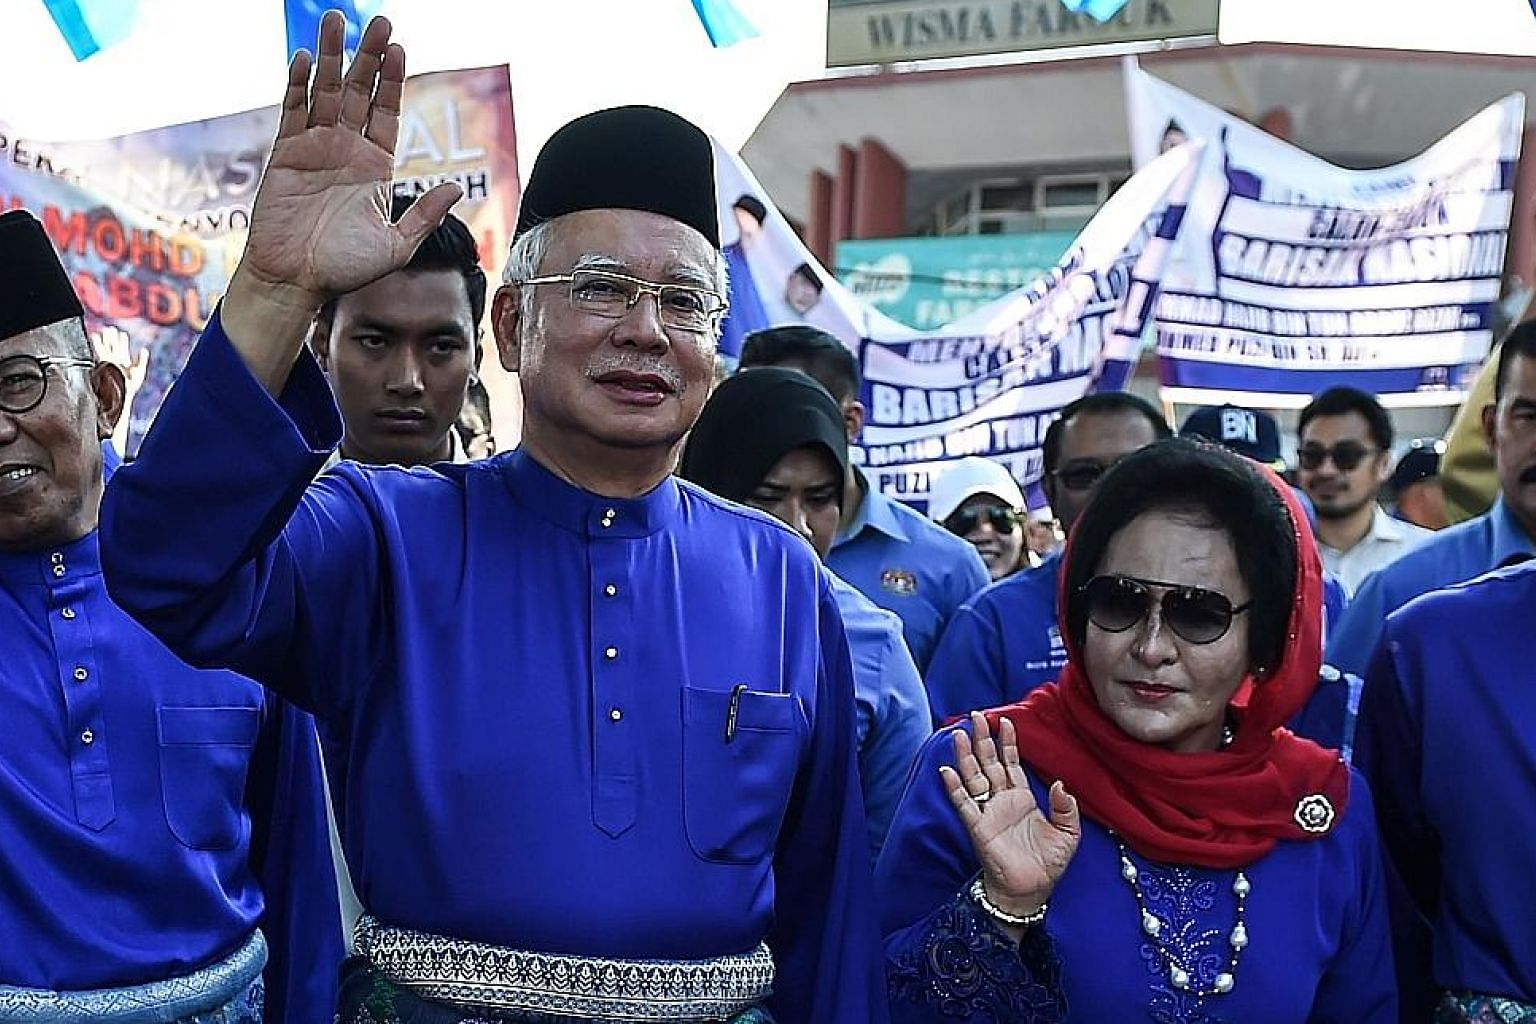 Malaysia's Prime Minister Najib Razak, with his wife Rosmah Mansor, arriving at the nomination centre to submit his election documents in Pekan, Pahang, yesterday.